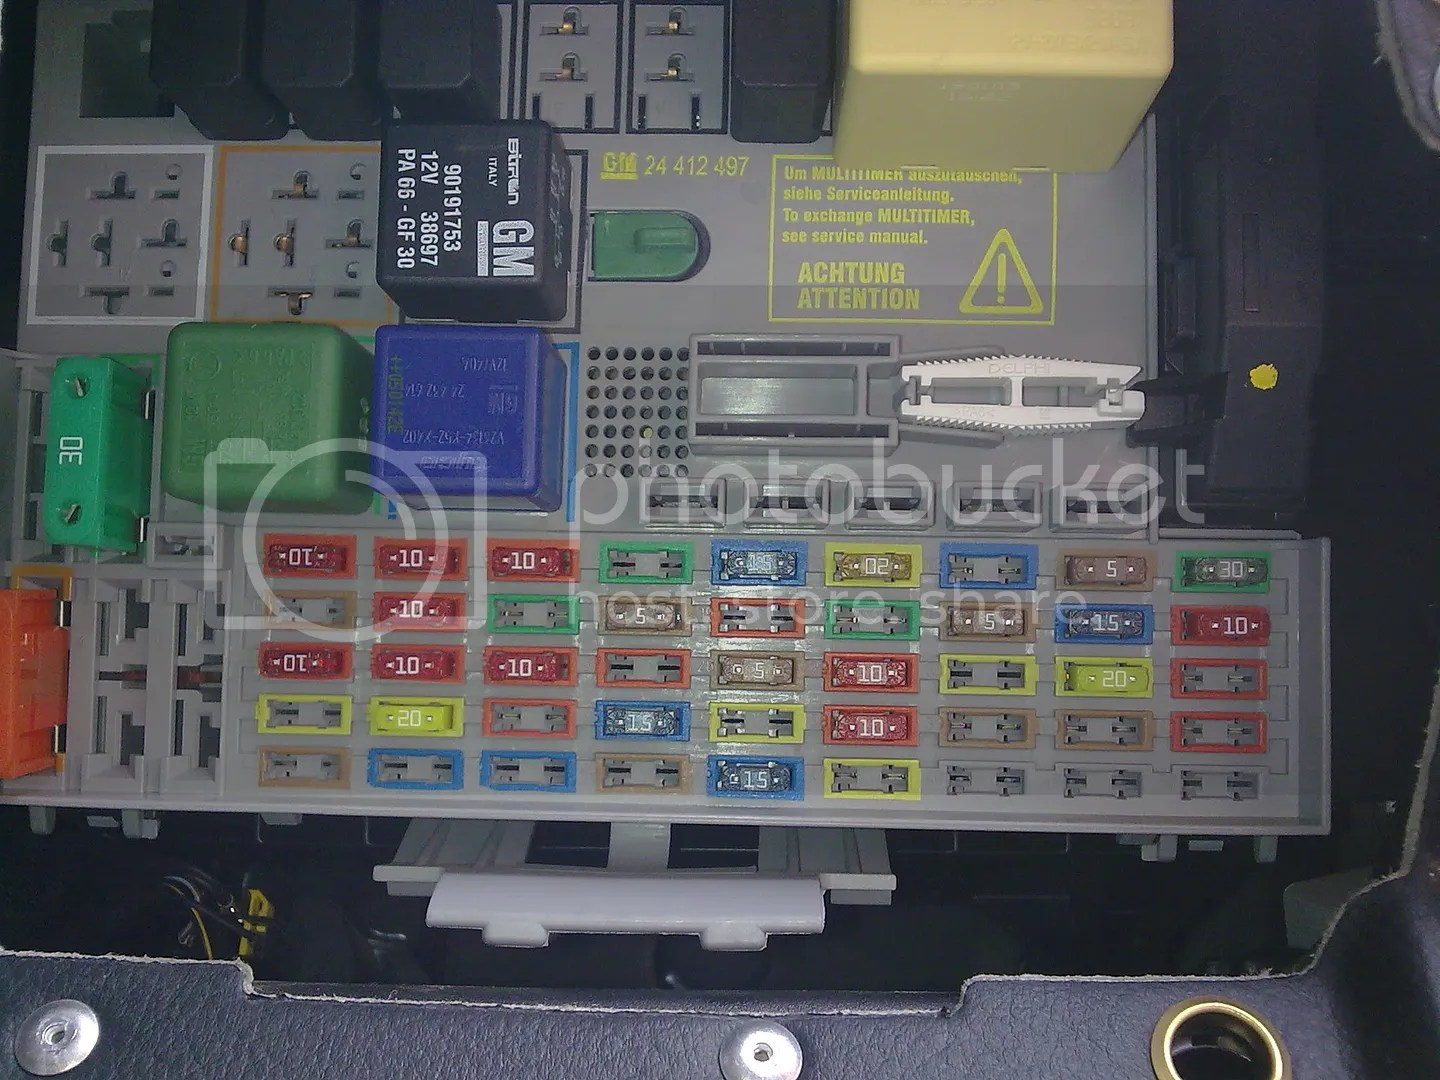 opel astra wiring diagram agile development model fuse box in 2004 trusted online description pawer motor